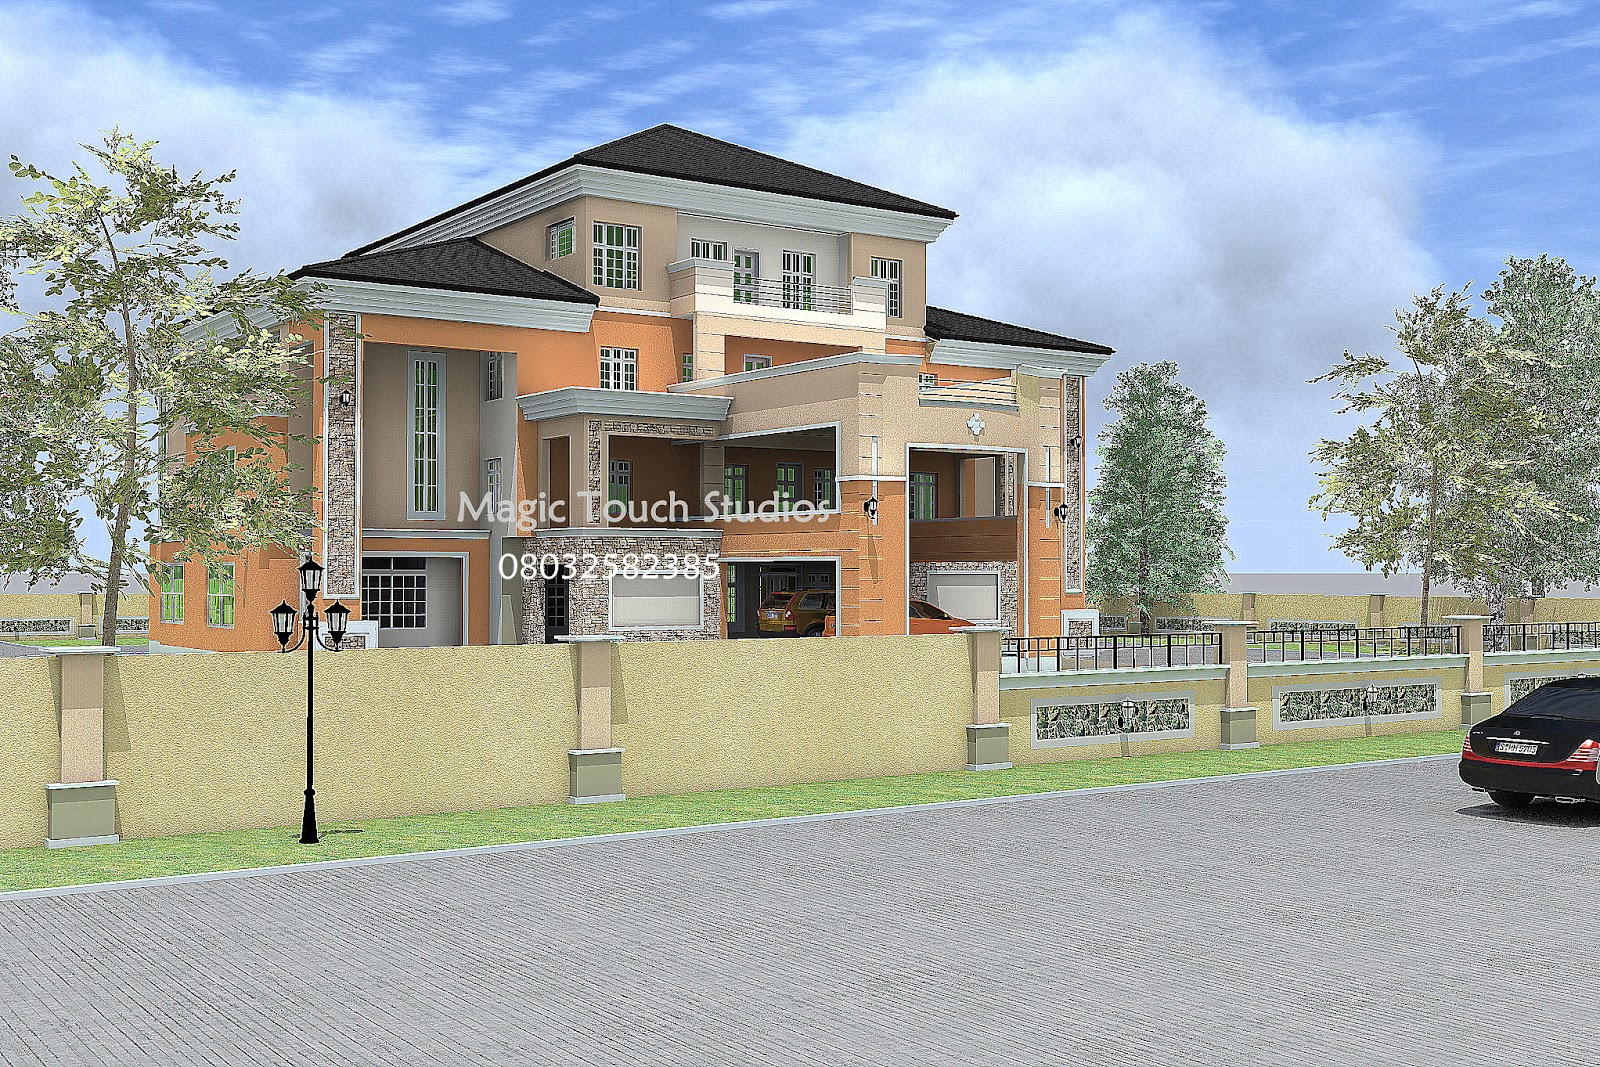 10 bedroom mansion residential homes and public designs for 10 bedroom mansion